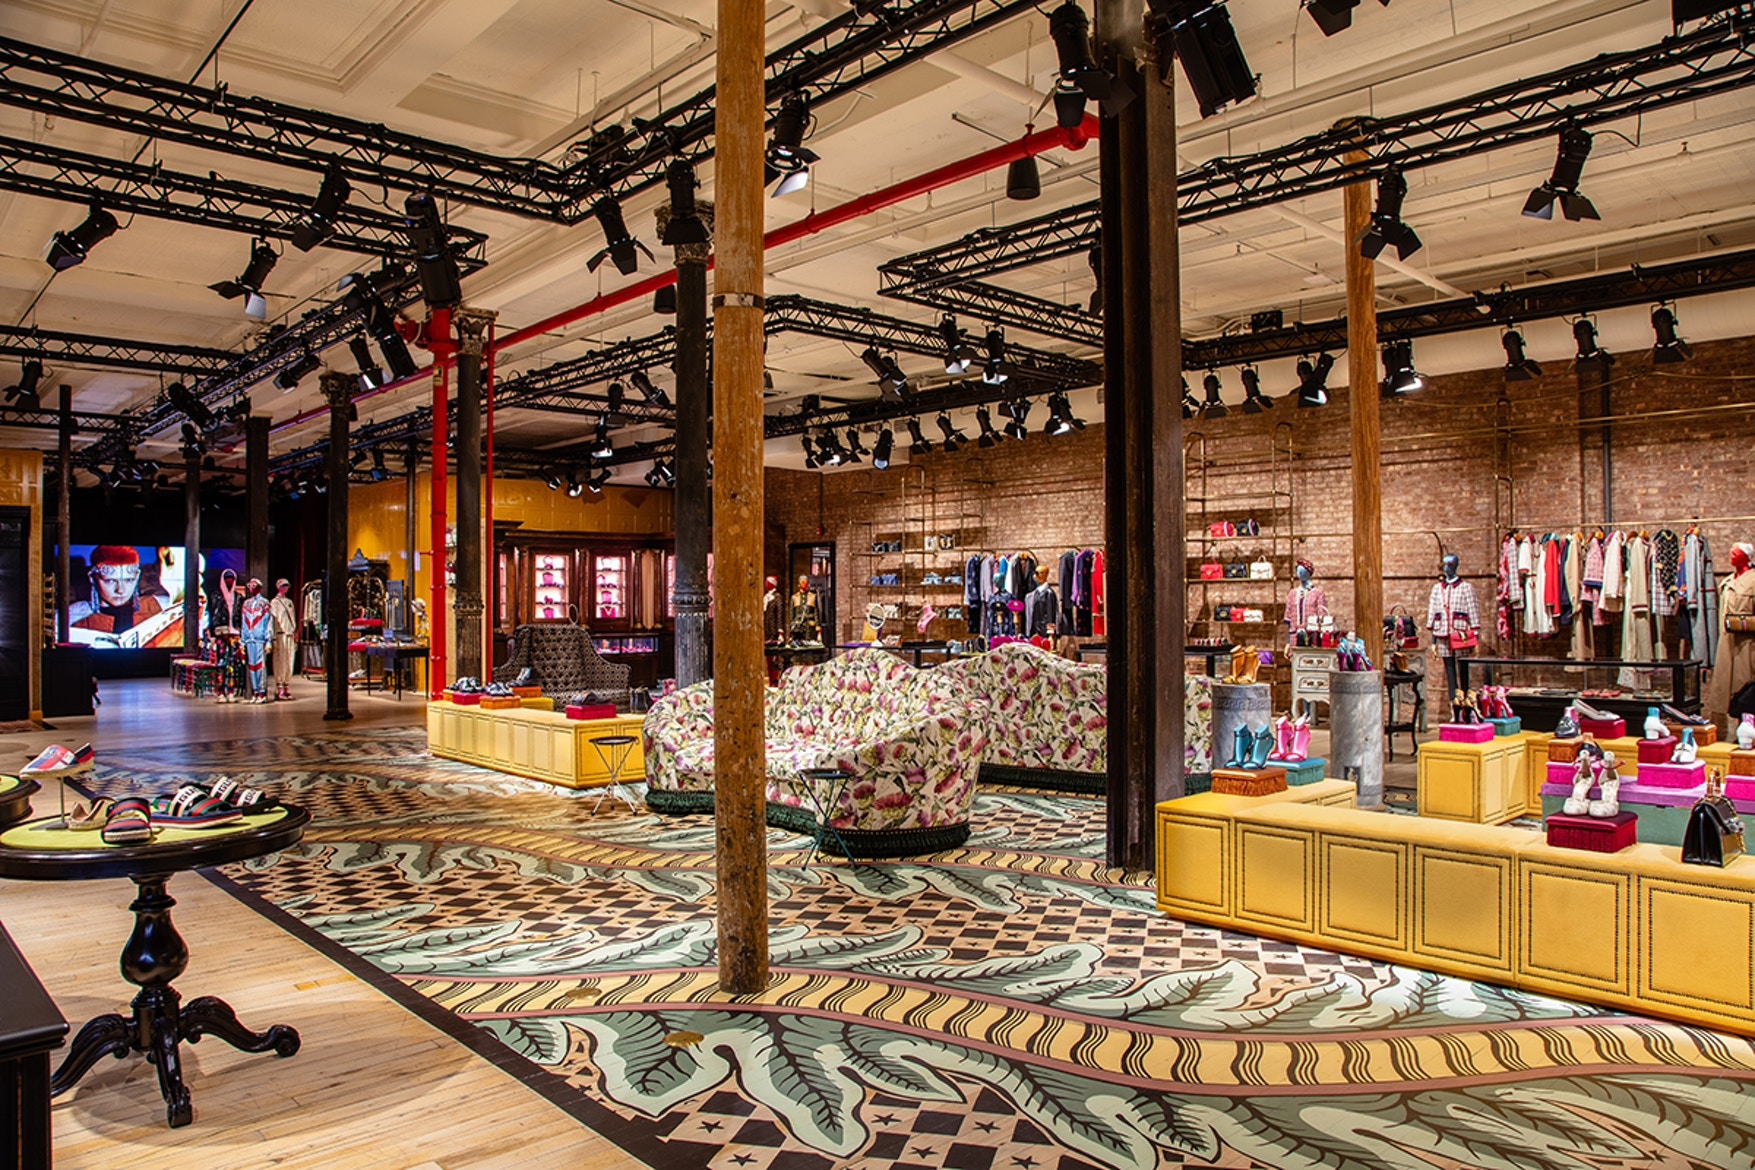 Gucci's Store Opening Takes Over NYC's SoHo District